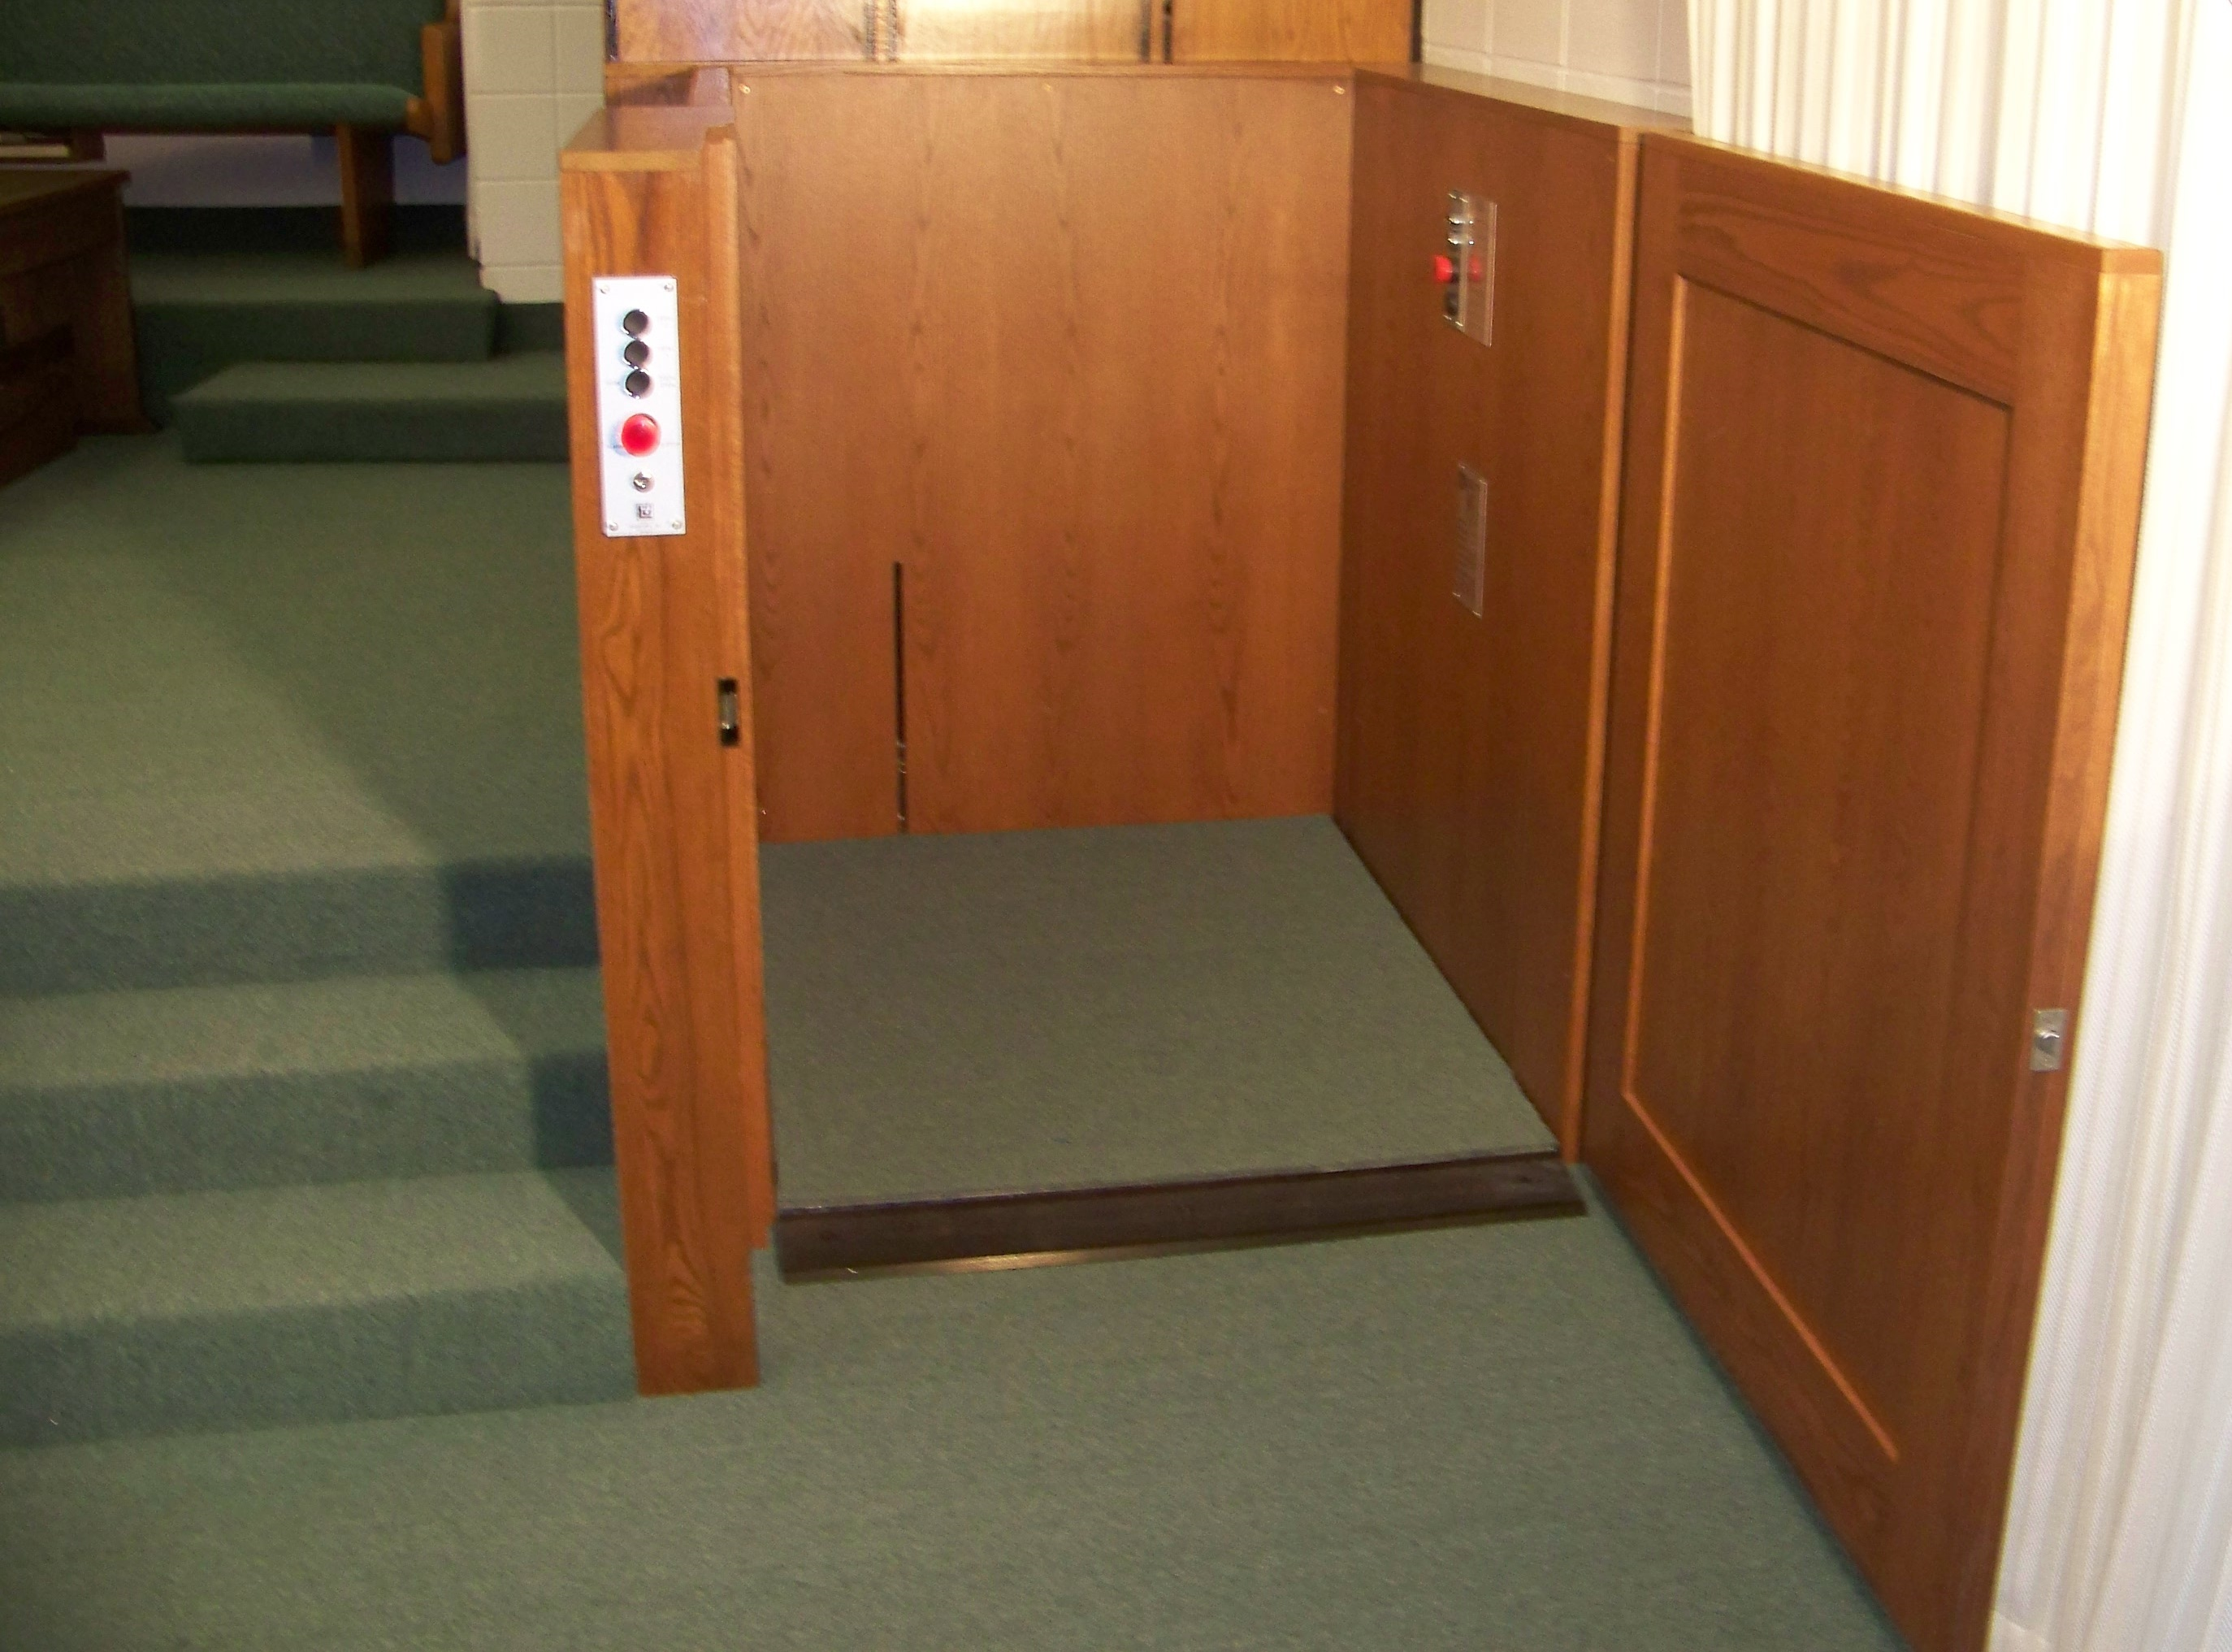 Lift door at lower level is opened. Lift in church provides access to and from the chancel. Lift is positioned next to stairs and is encased in wood millwork blending in with surrounding aesthetics. Lift function readily available, independently operable.